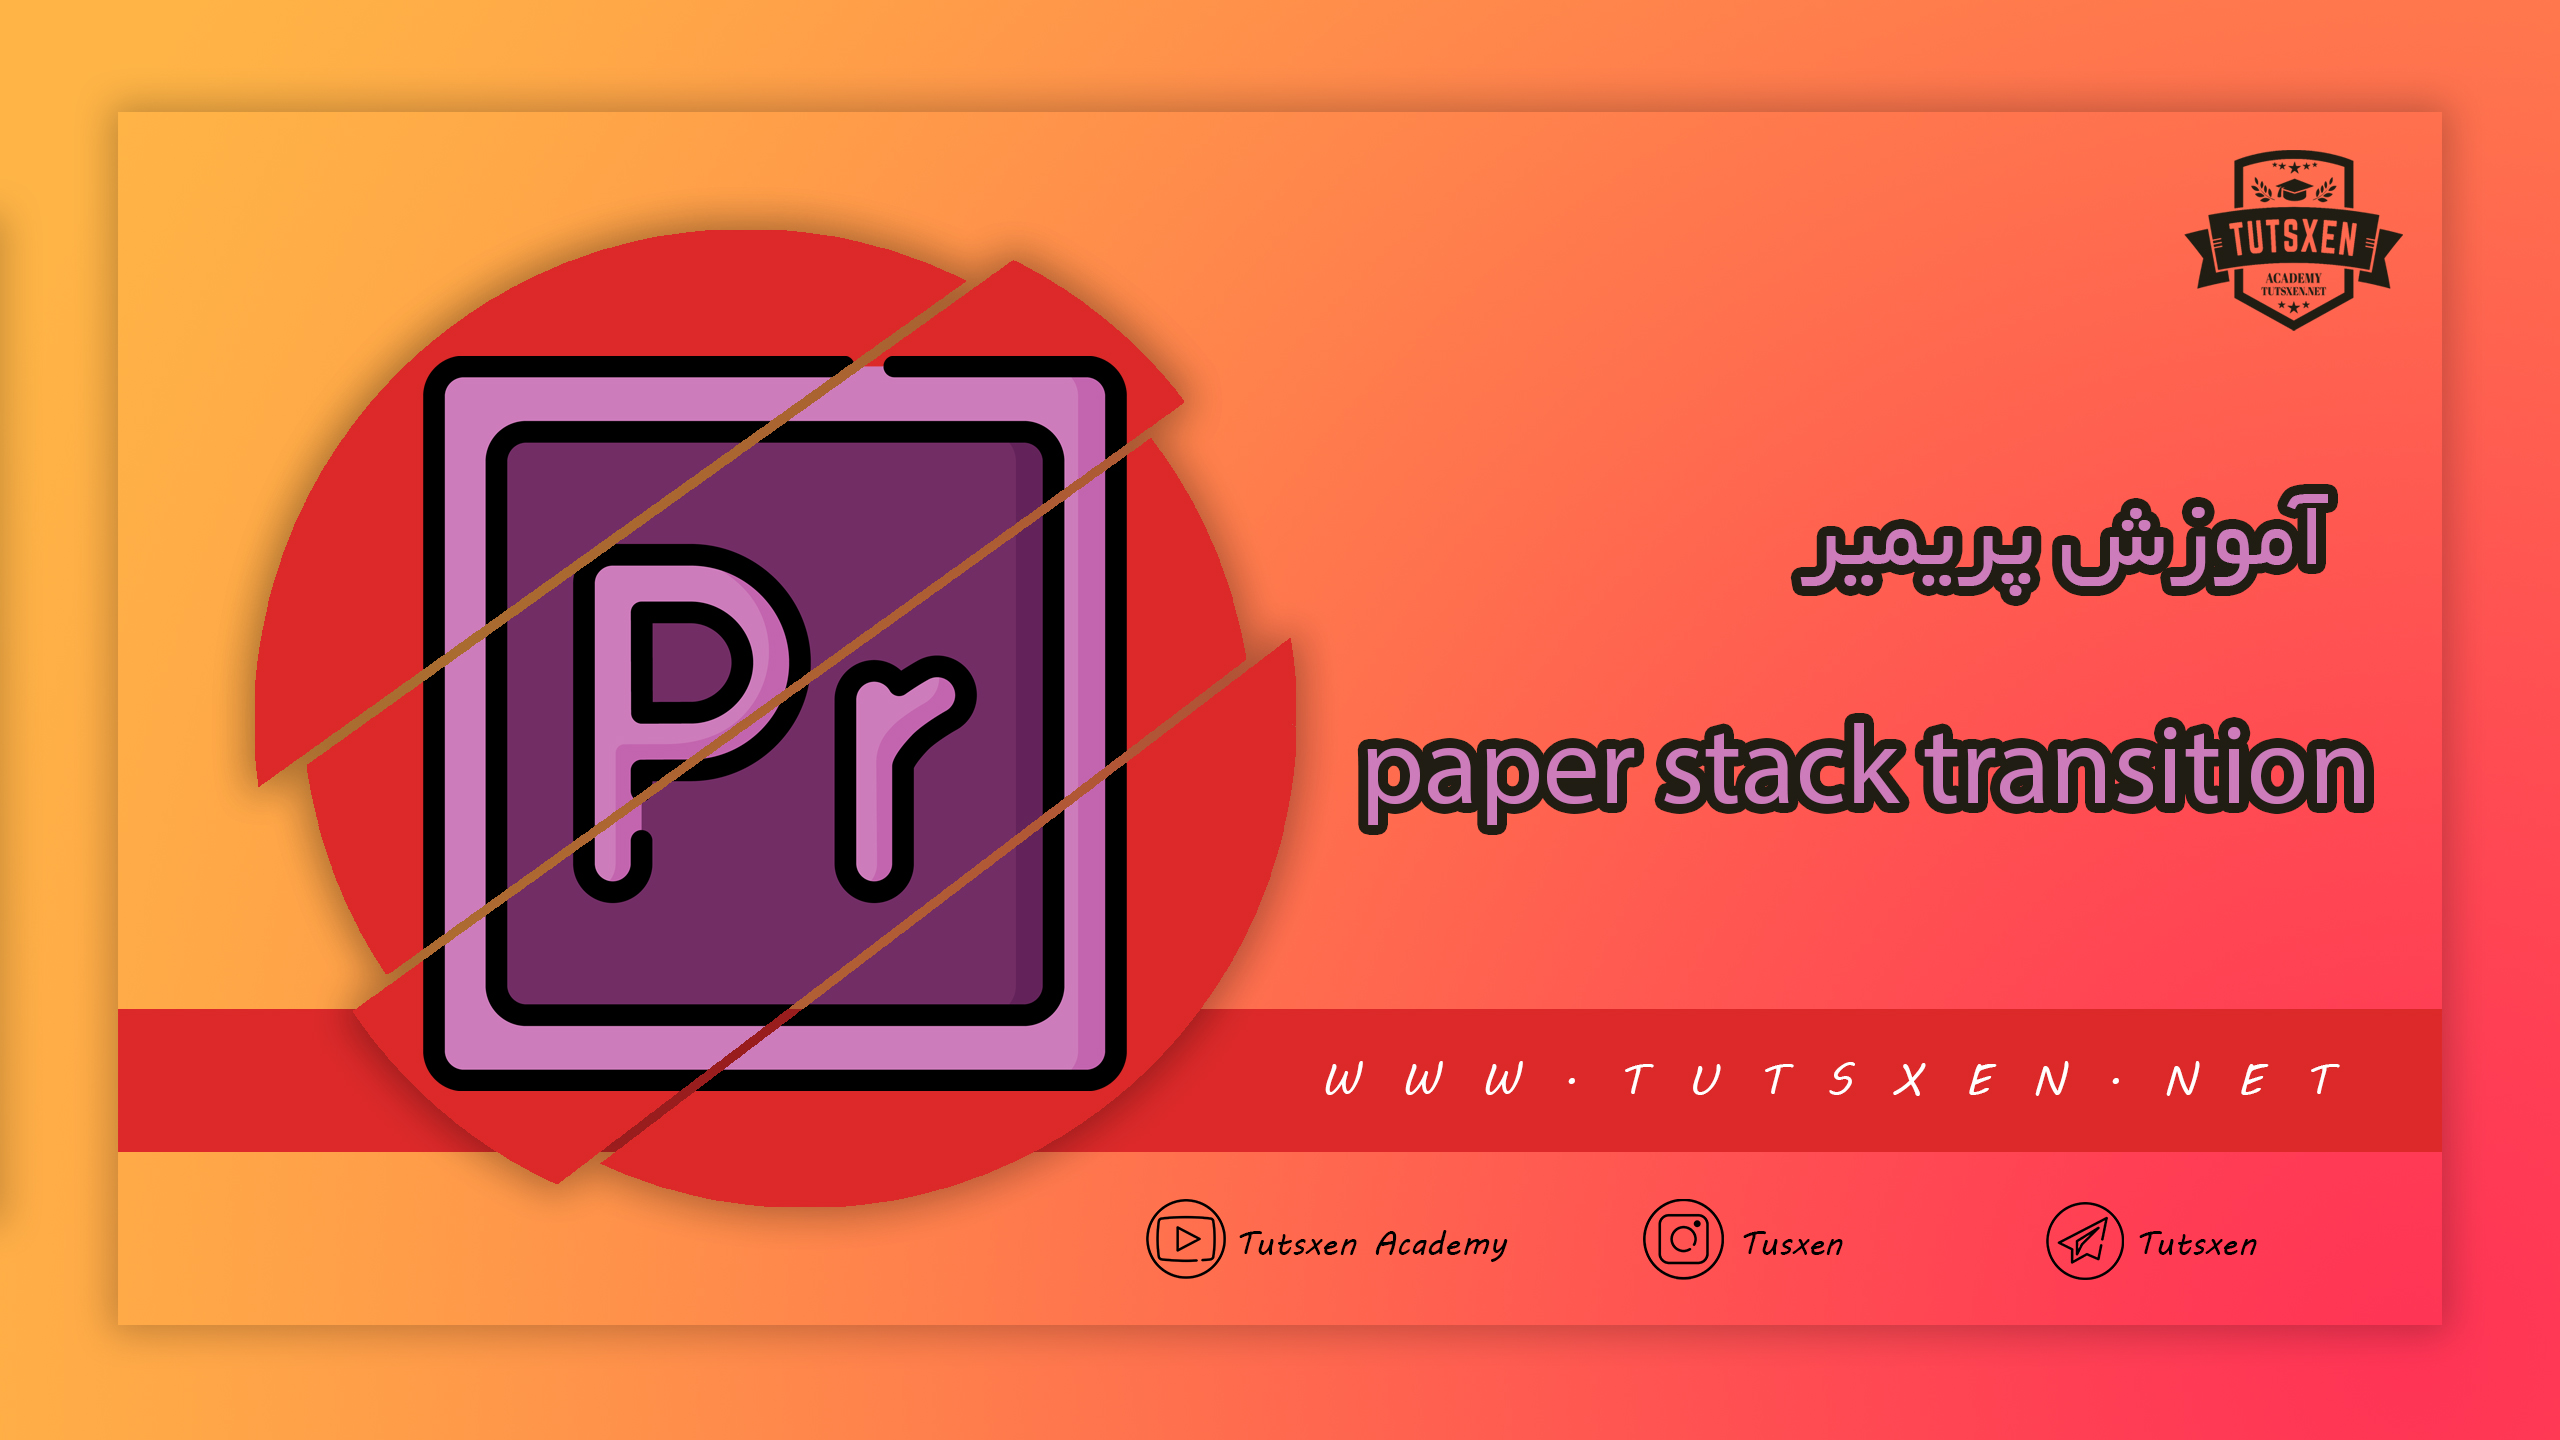 آموزش paper stack transition پریمیر